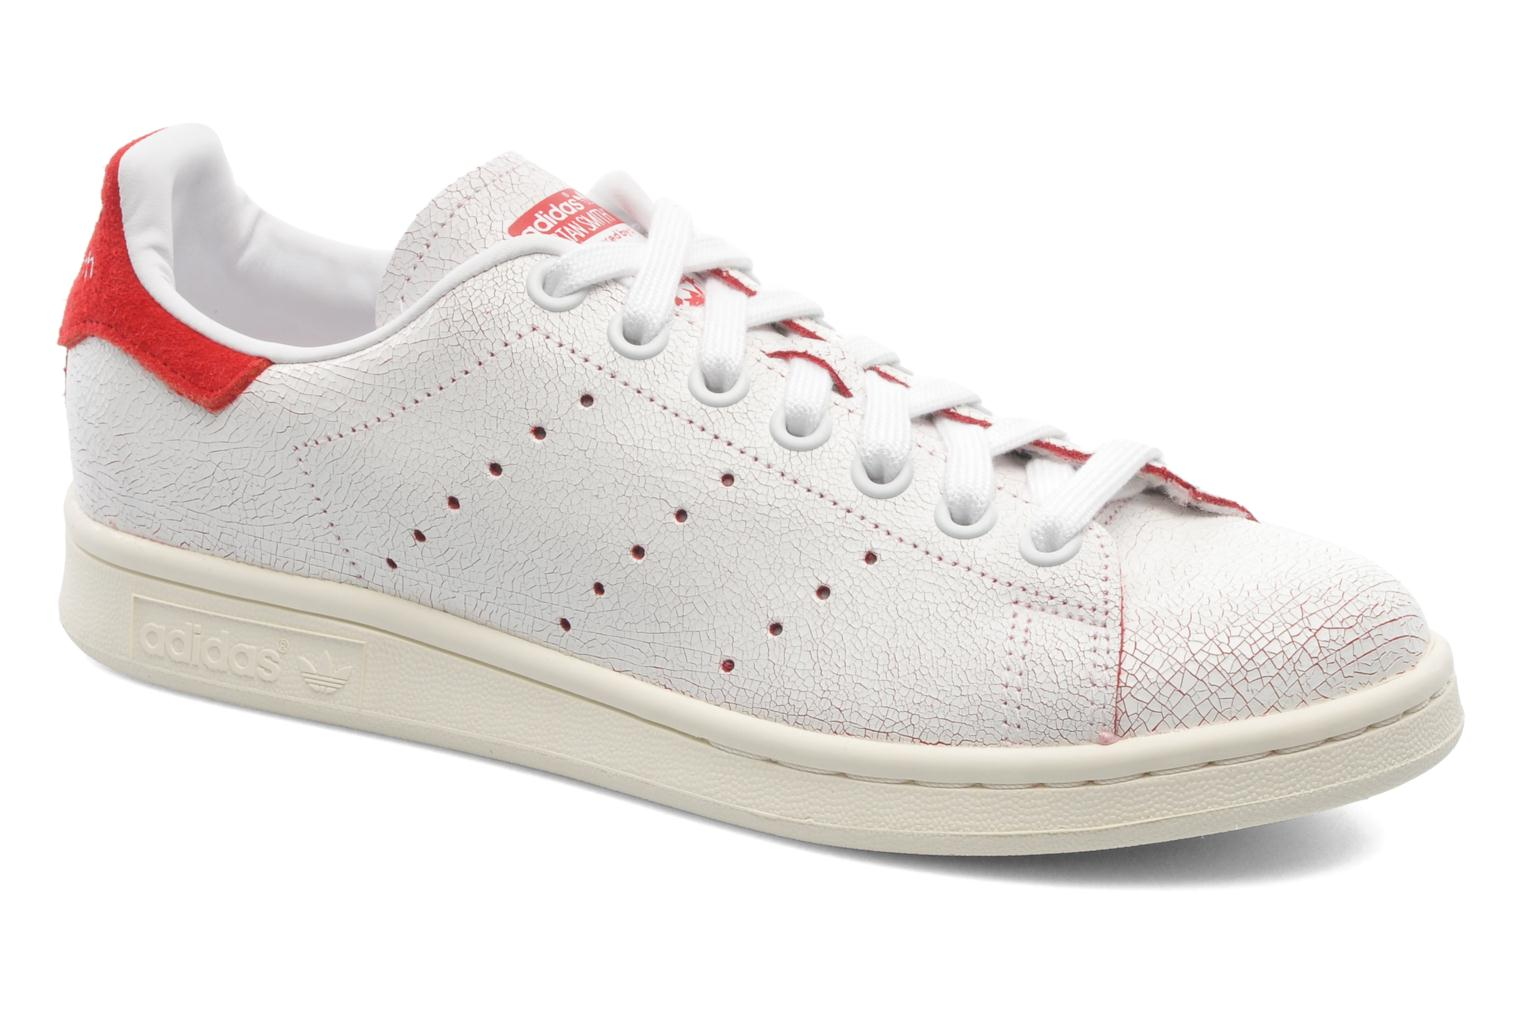 Stan Smith W Ftwbla/Ftwbla/Roucol